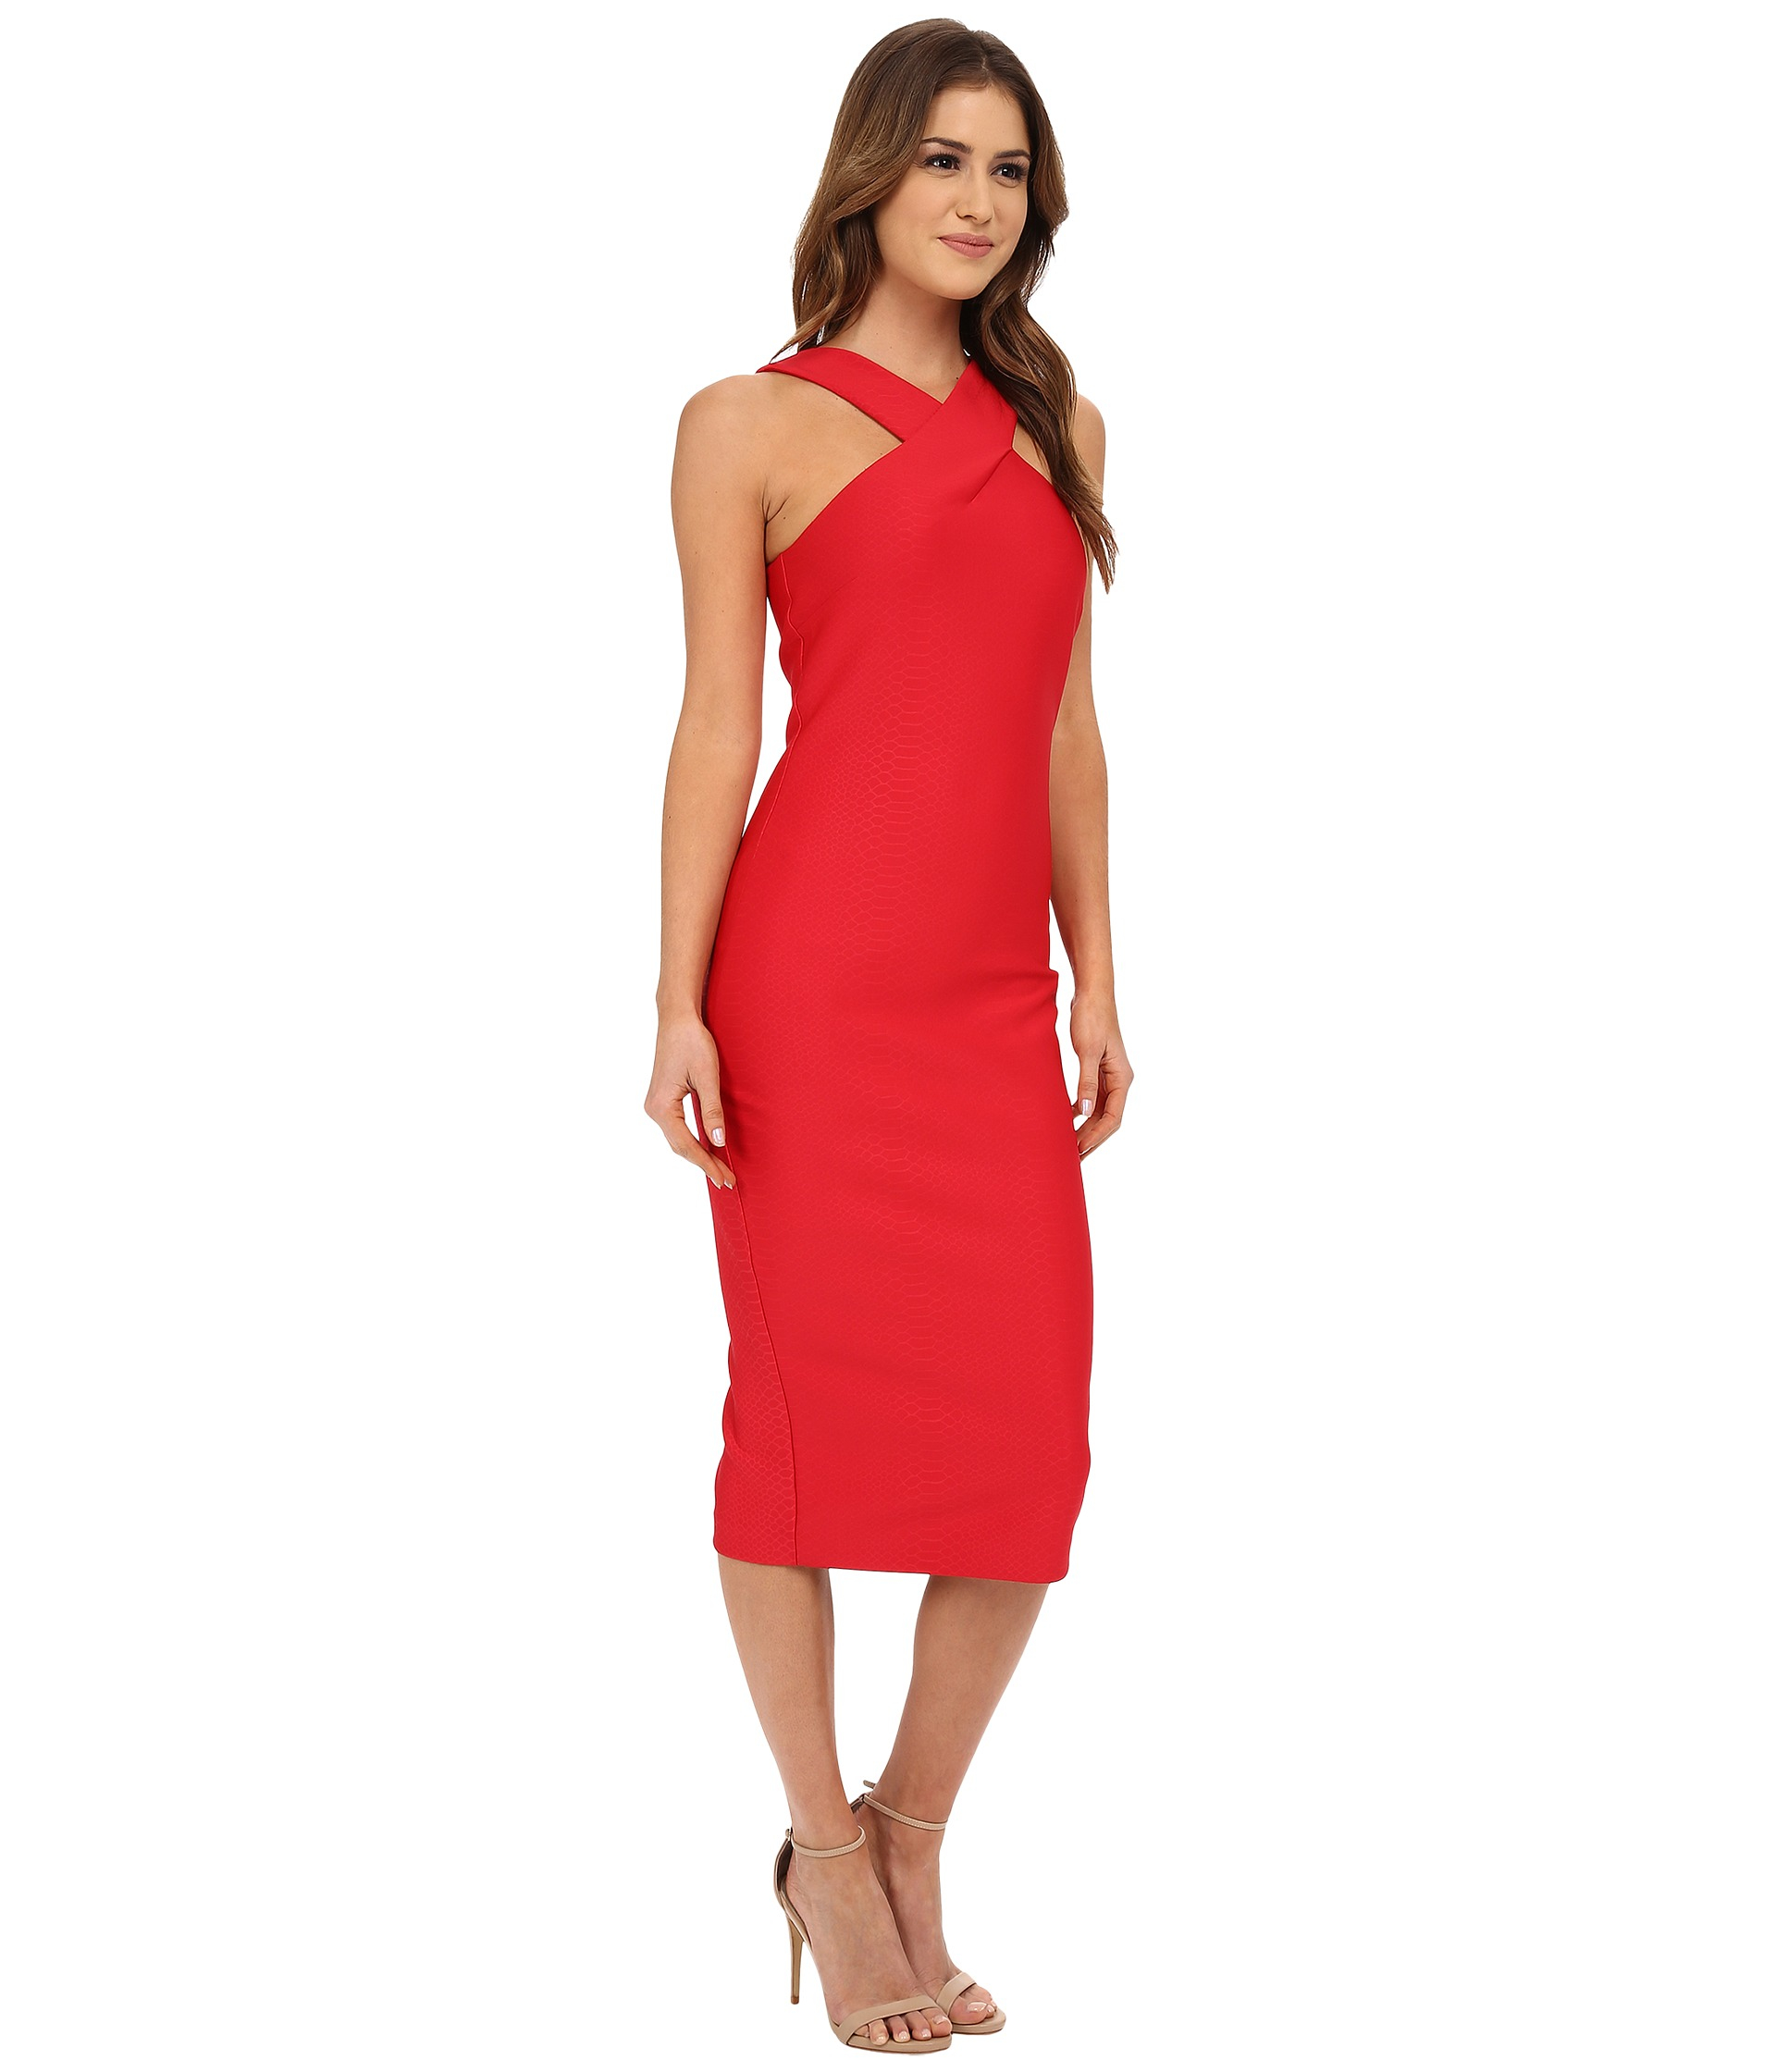 d40de21855900 Lyst - Ted Baker Erskine Snake Jacquard Midi Dress in Red